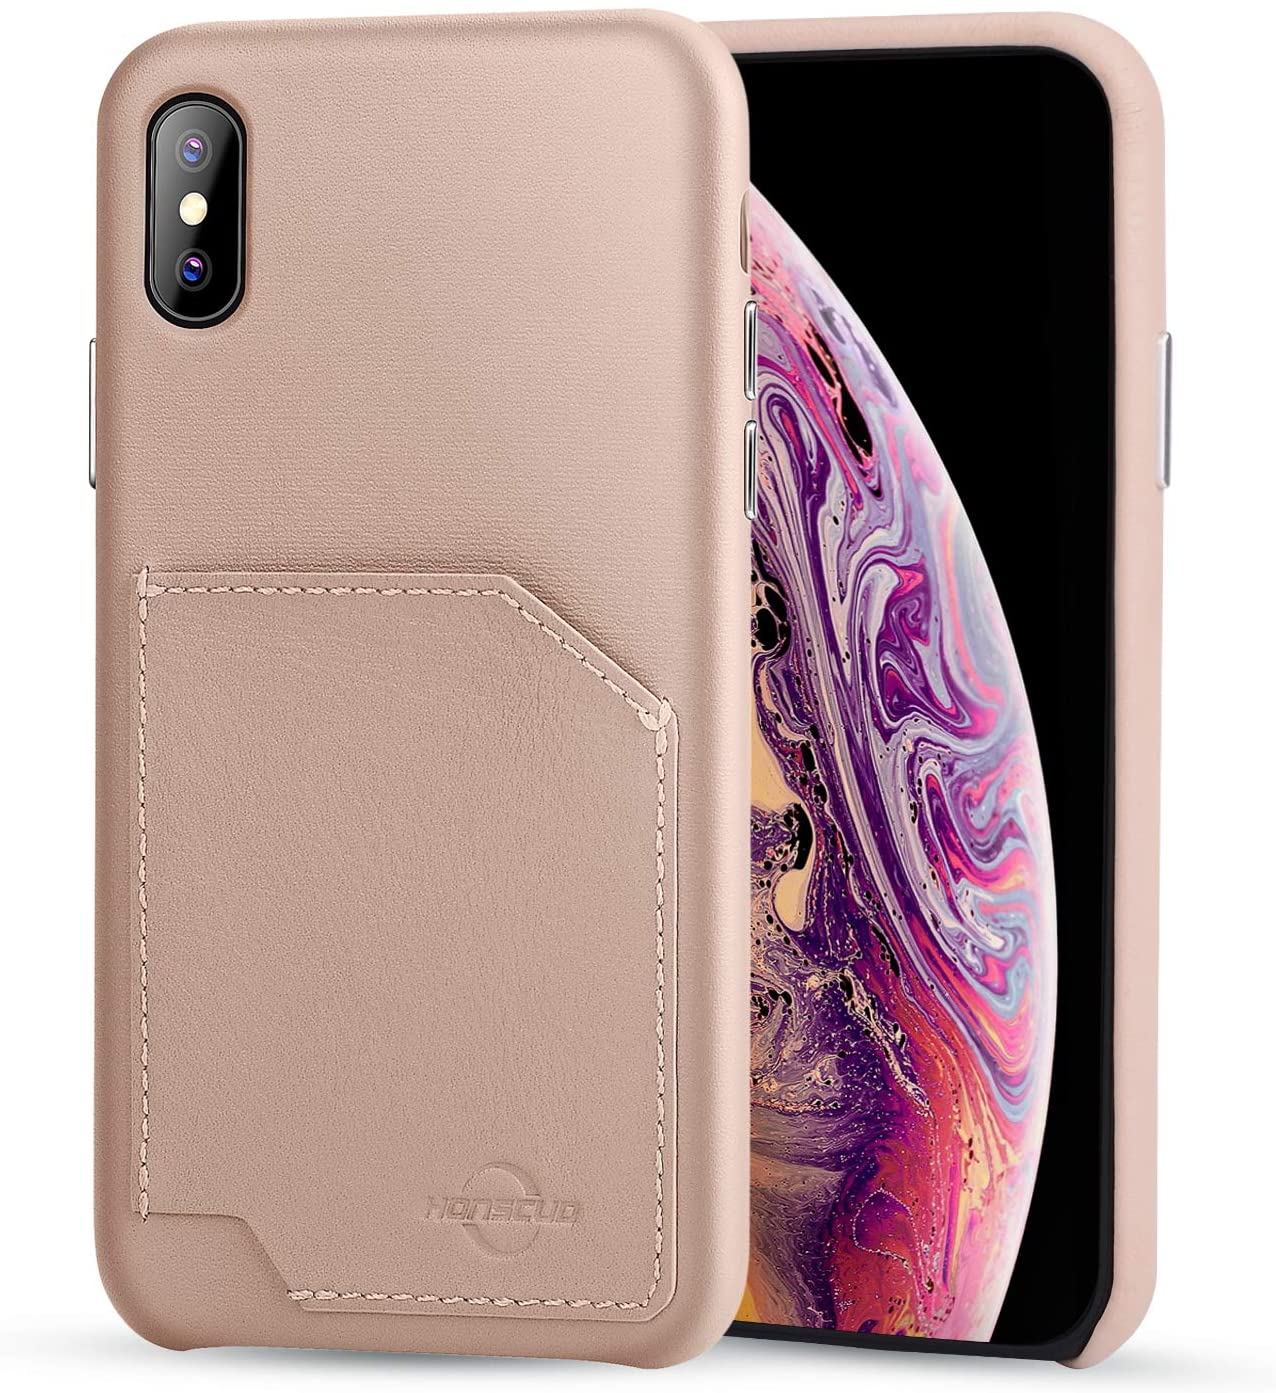 iPhone X/XS Wallet Case, HONSCUD RFID Blocking Premium Genuine Leather Case with Card Holder iPhone X/XS Case Shockproof Folio Flip Protective Cover for Apple iPhone X/XS (5.8 Inch) (Creamy-White)